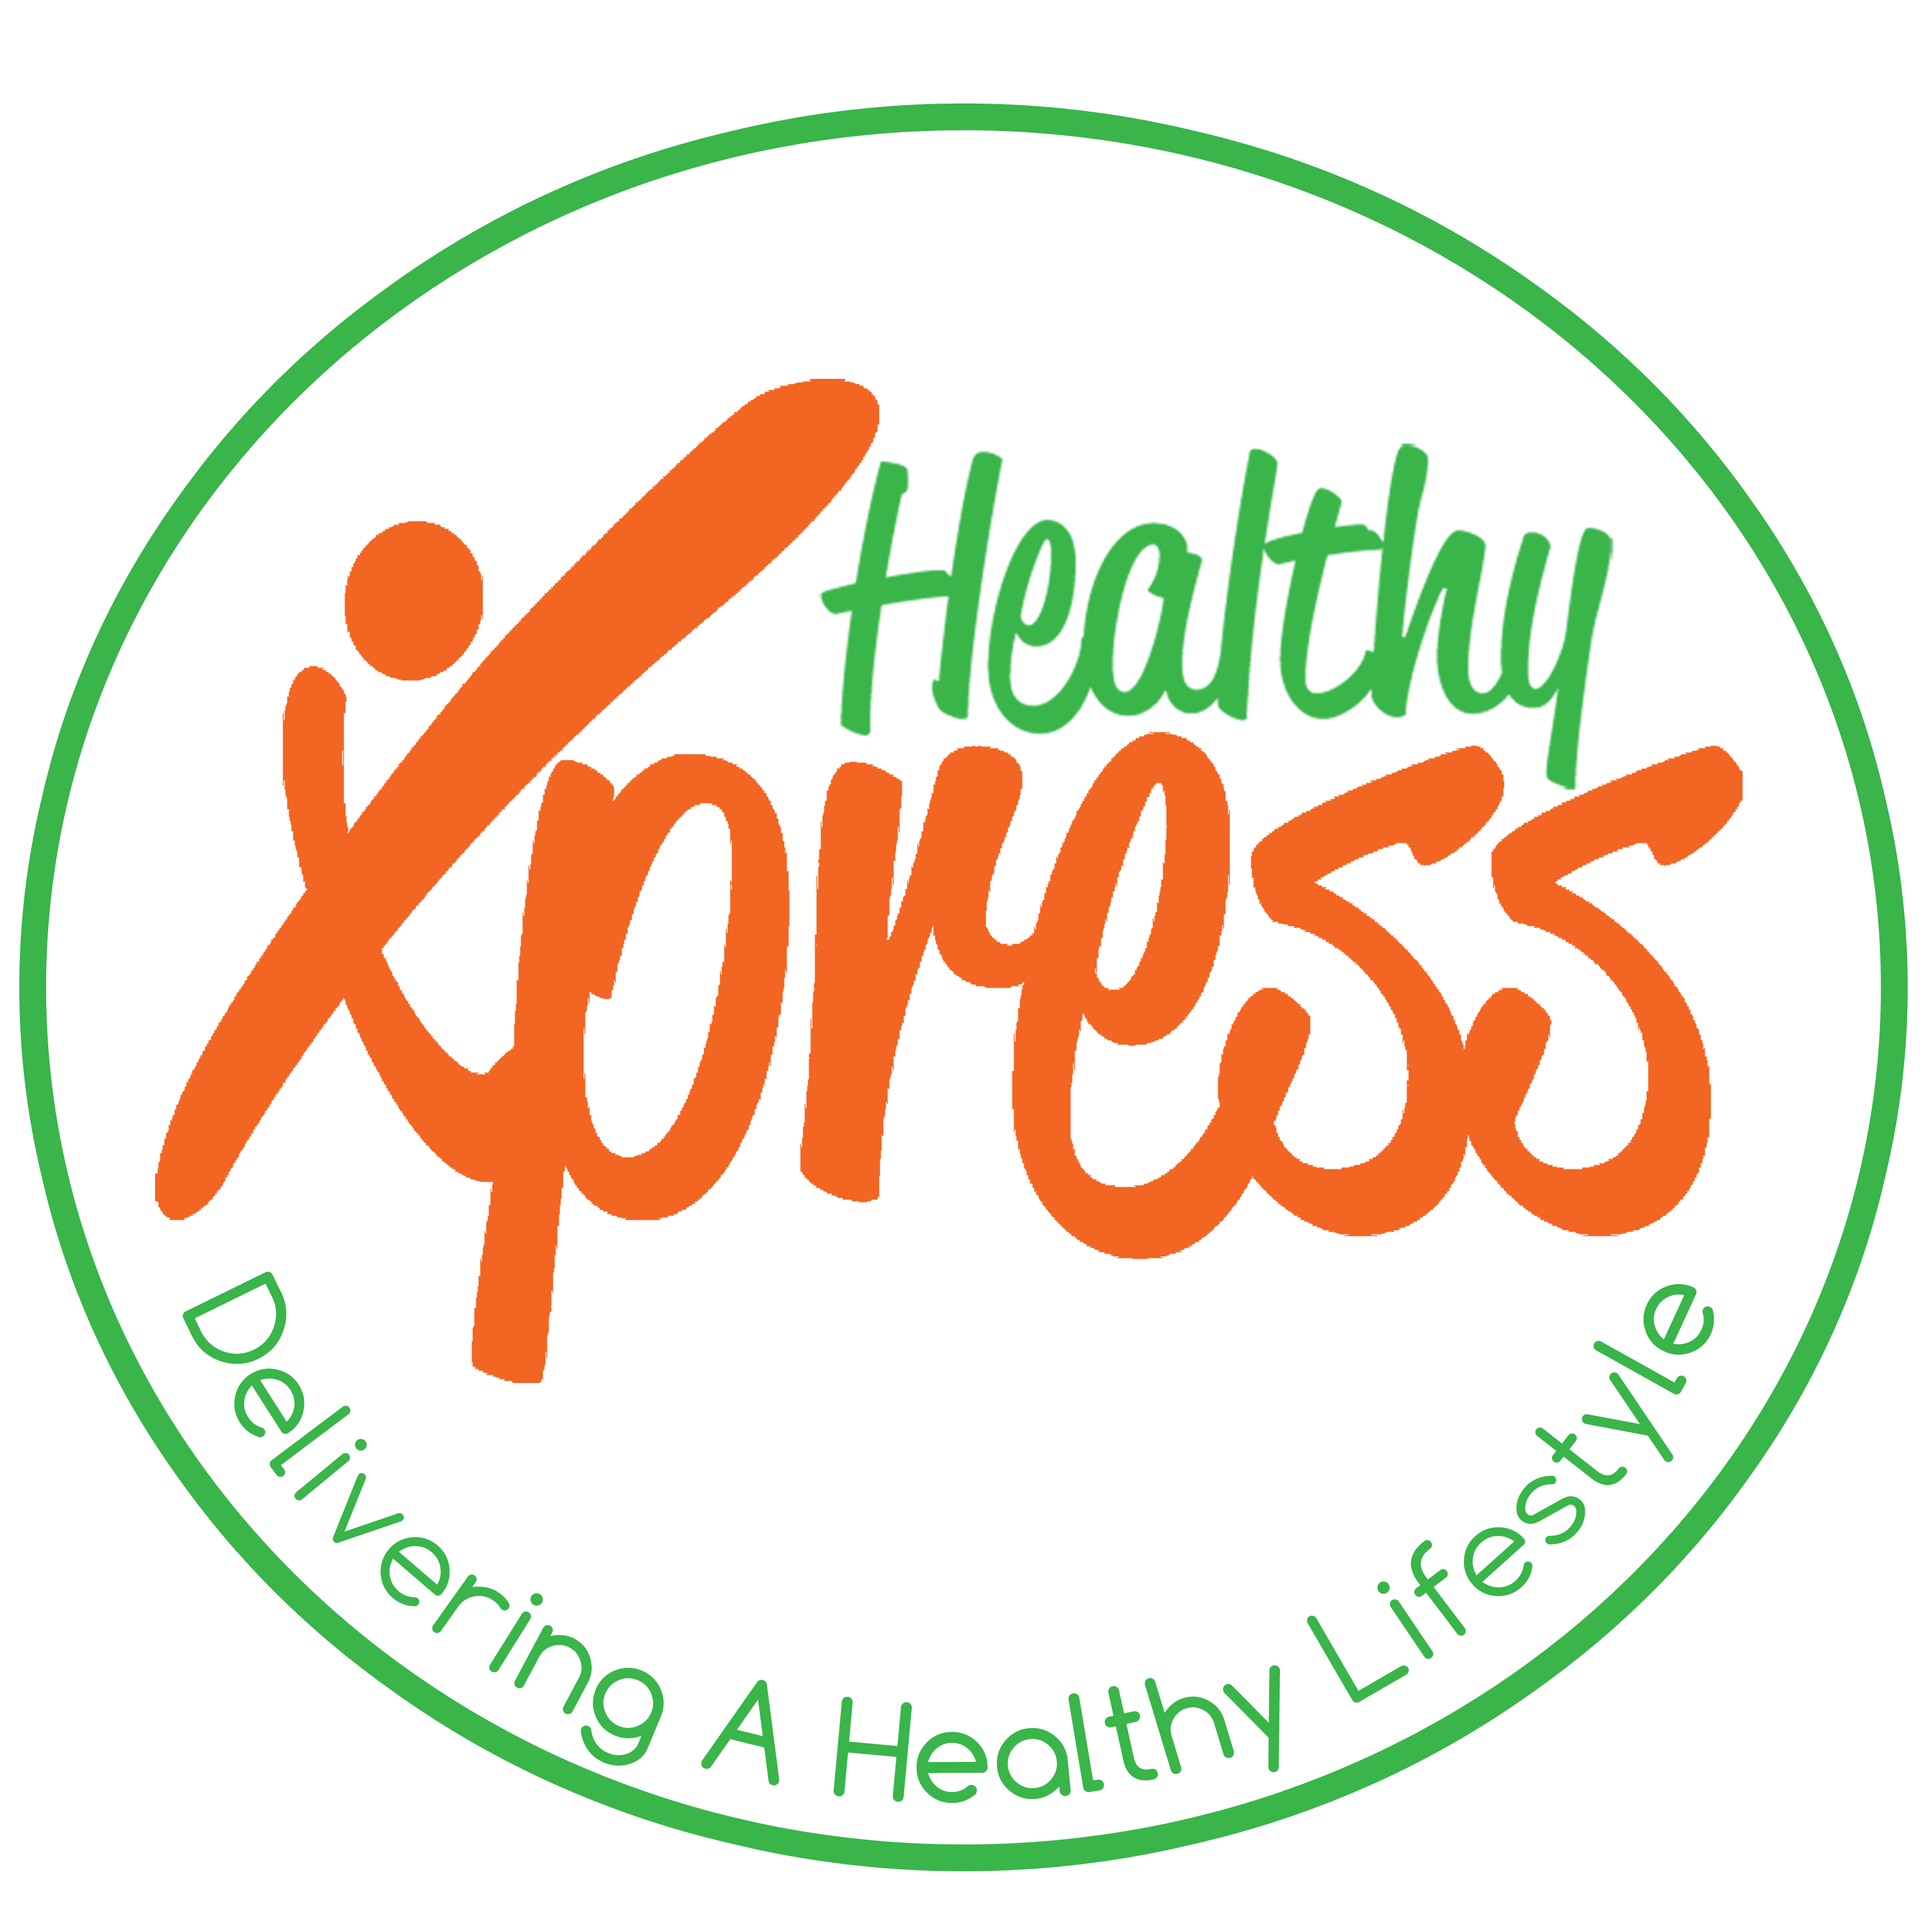 Healthy Xpress